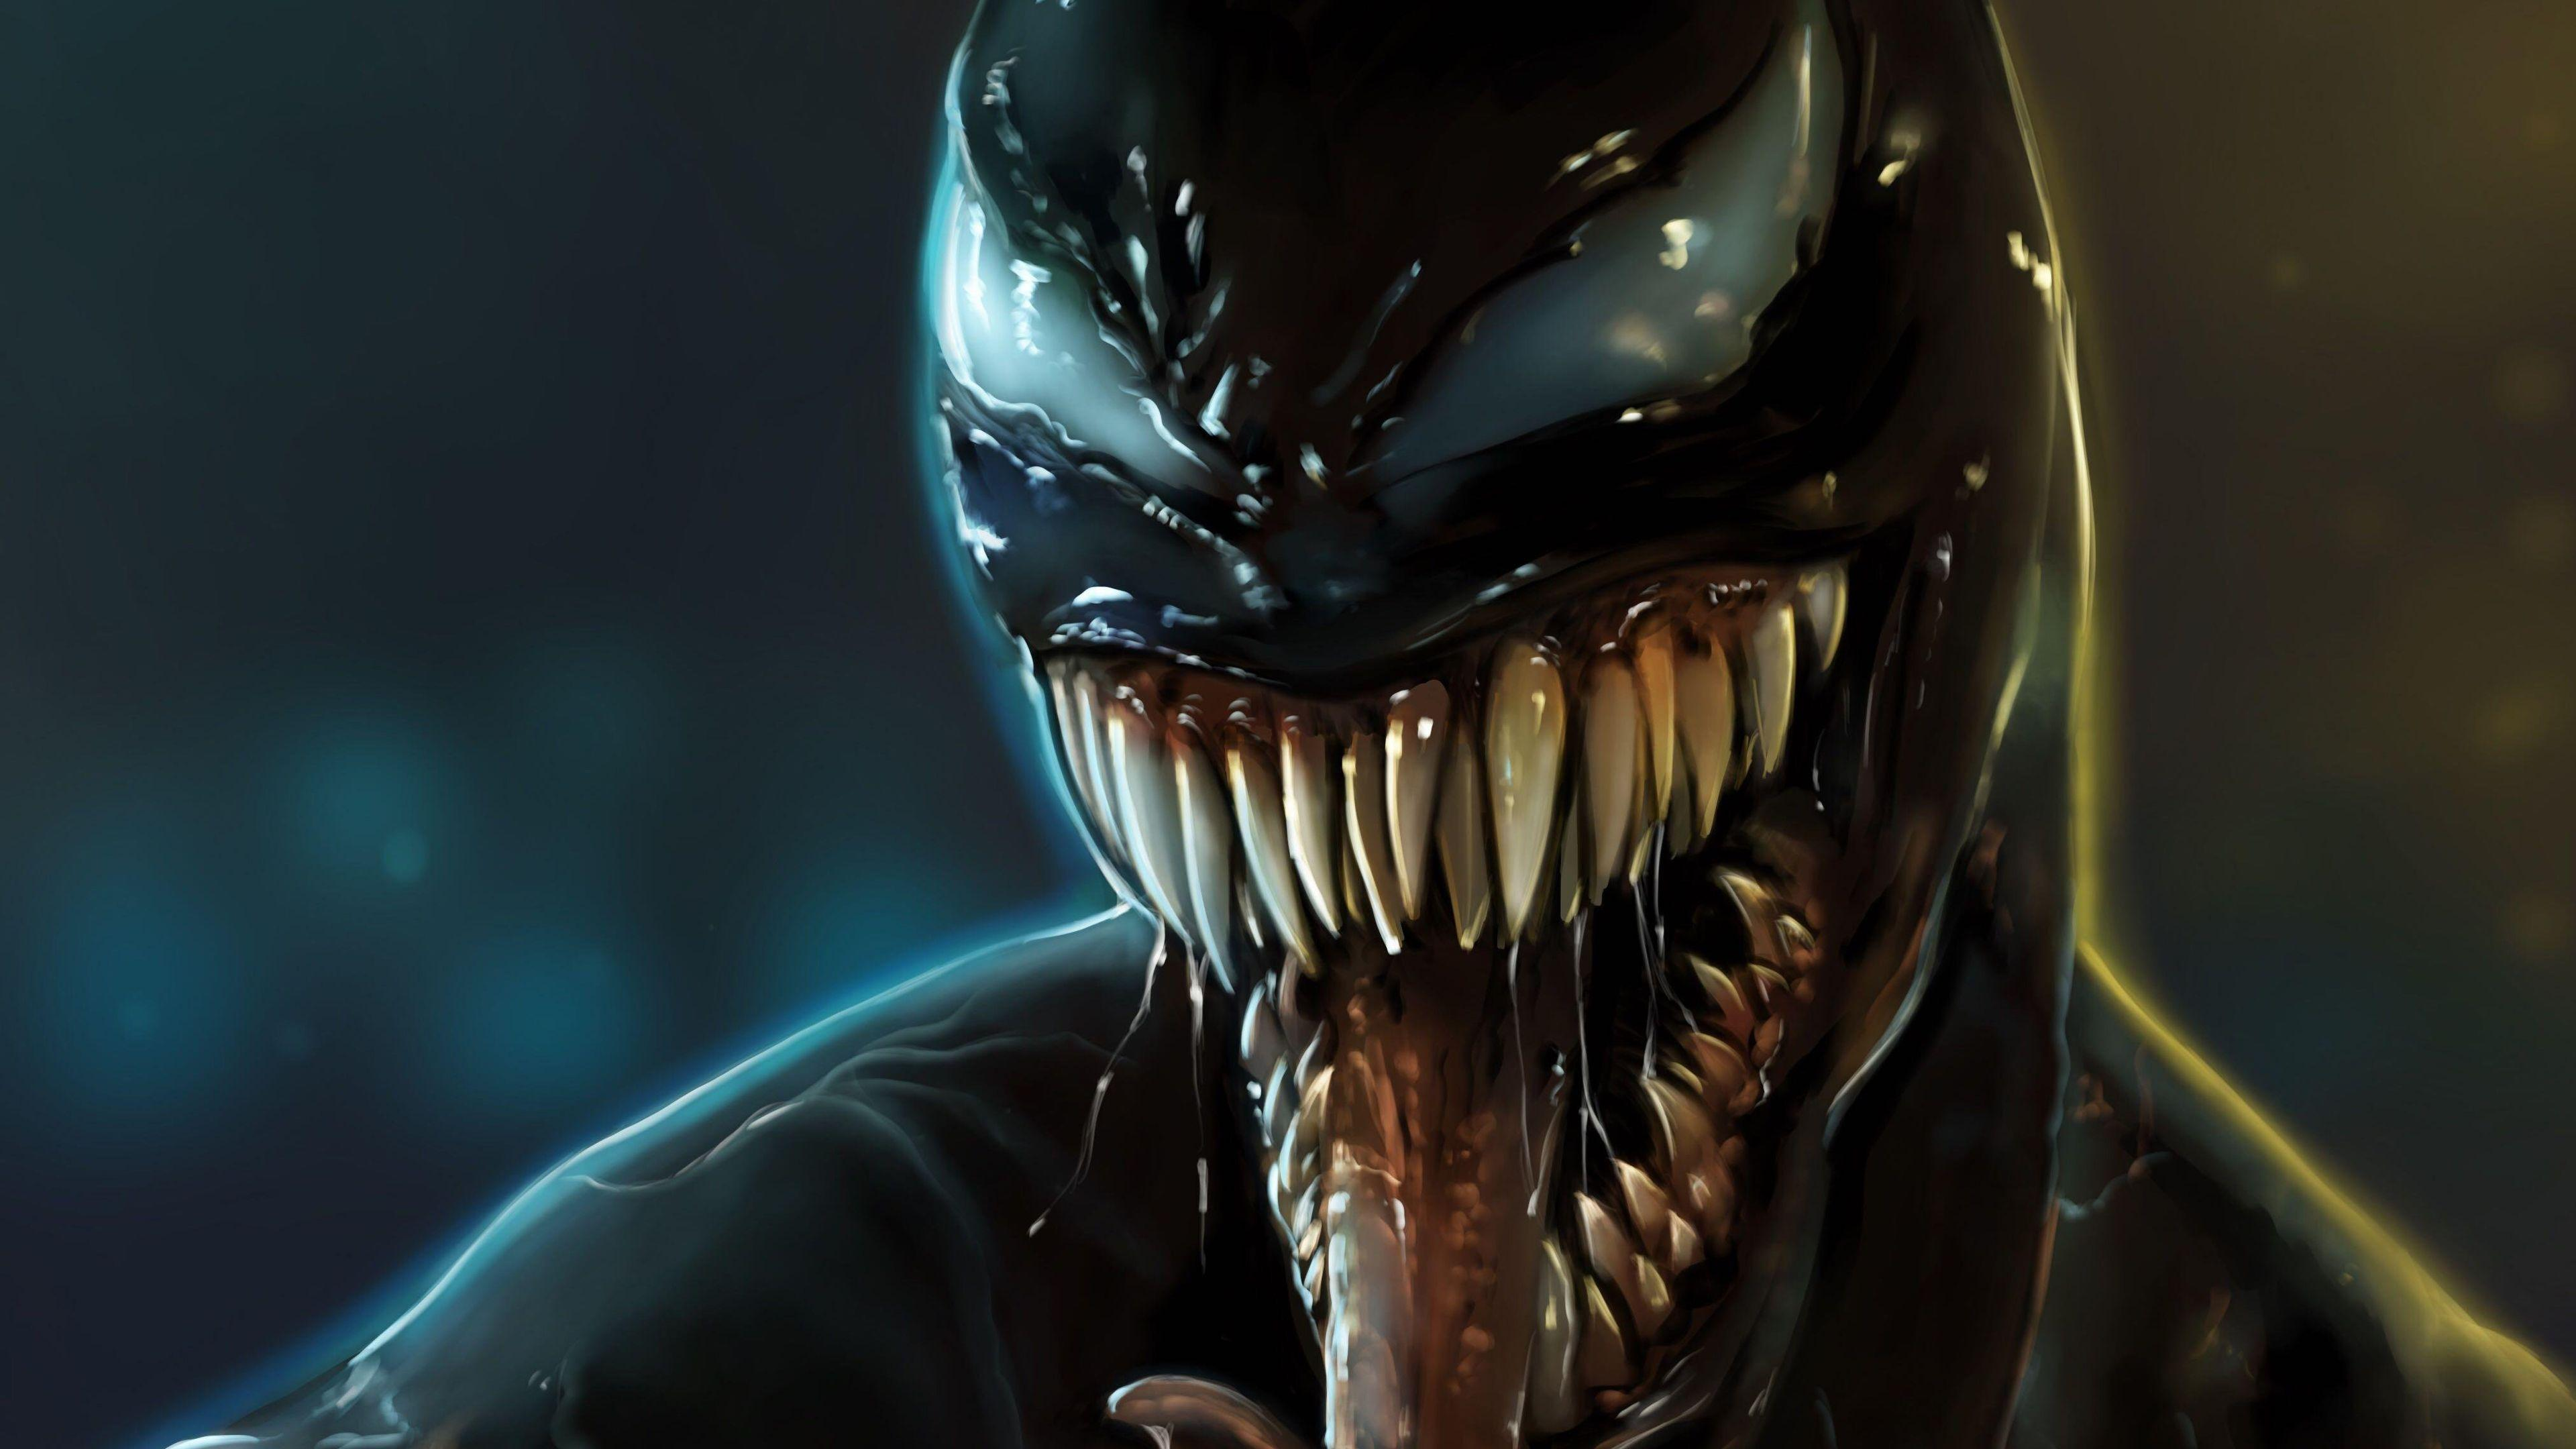 Wallpapers 4k Venom 4k Digital Arts 4k